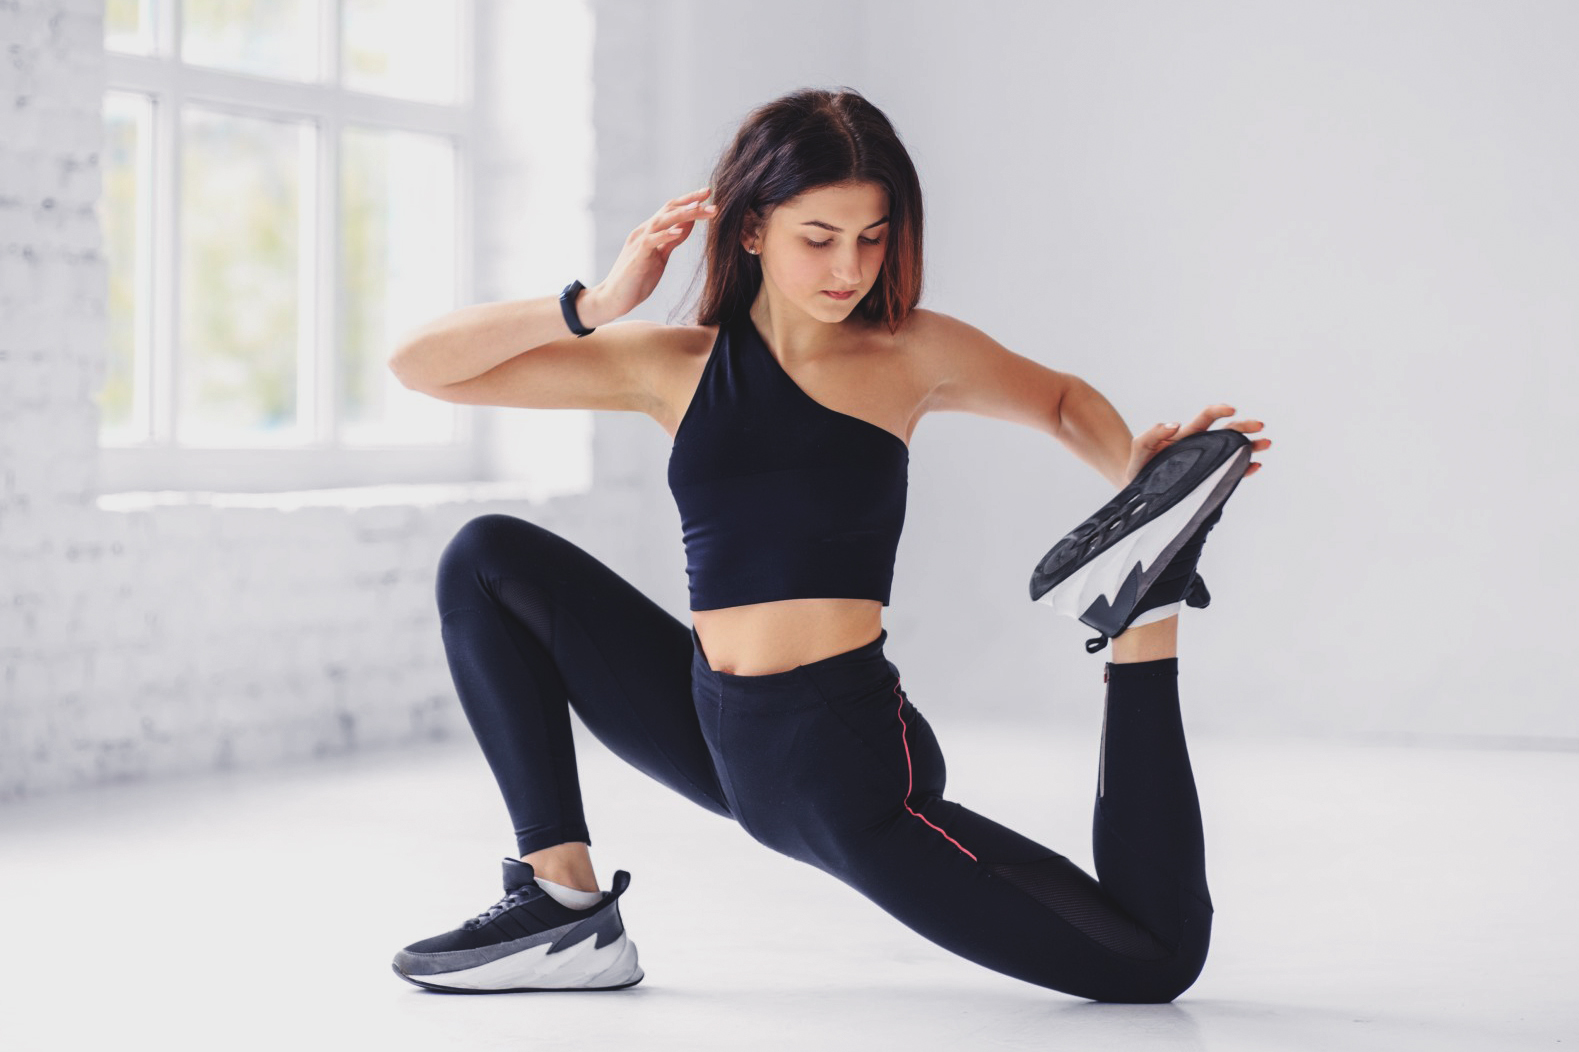 Woman stretching in performance gear